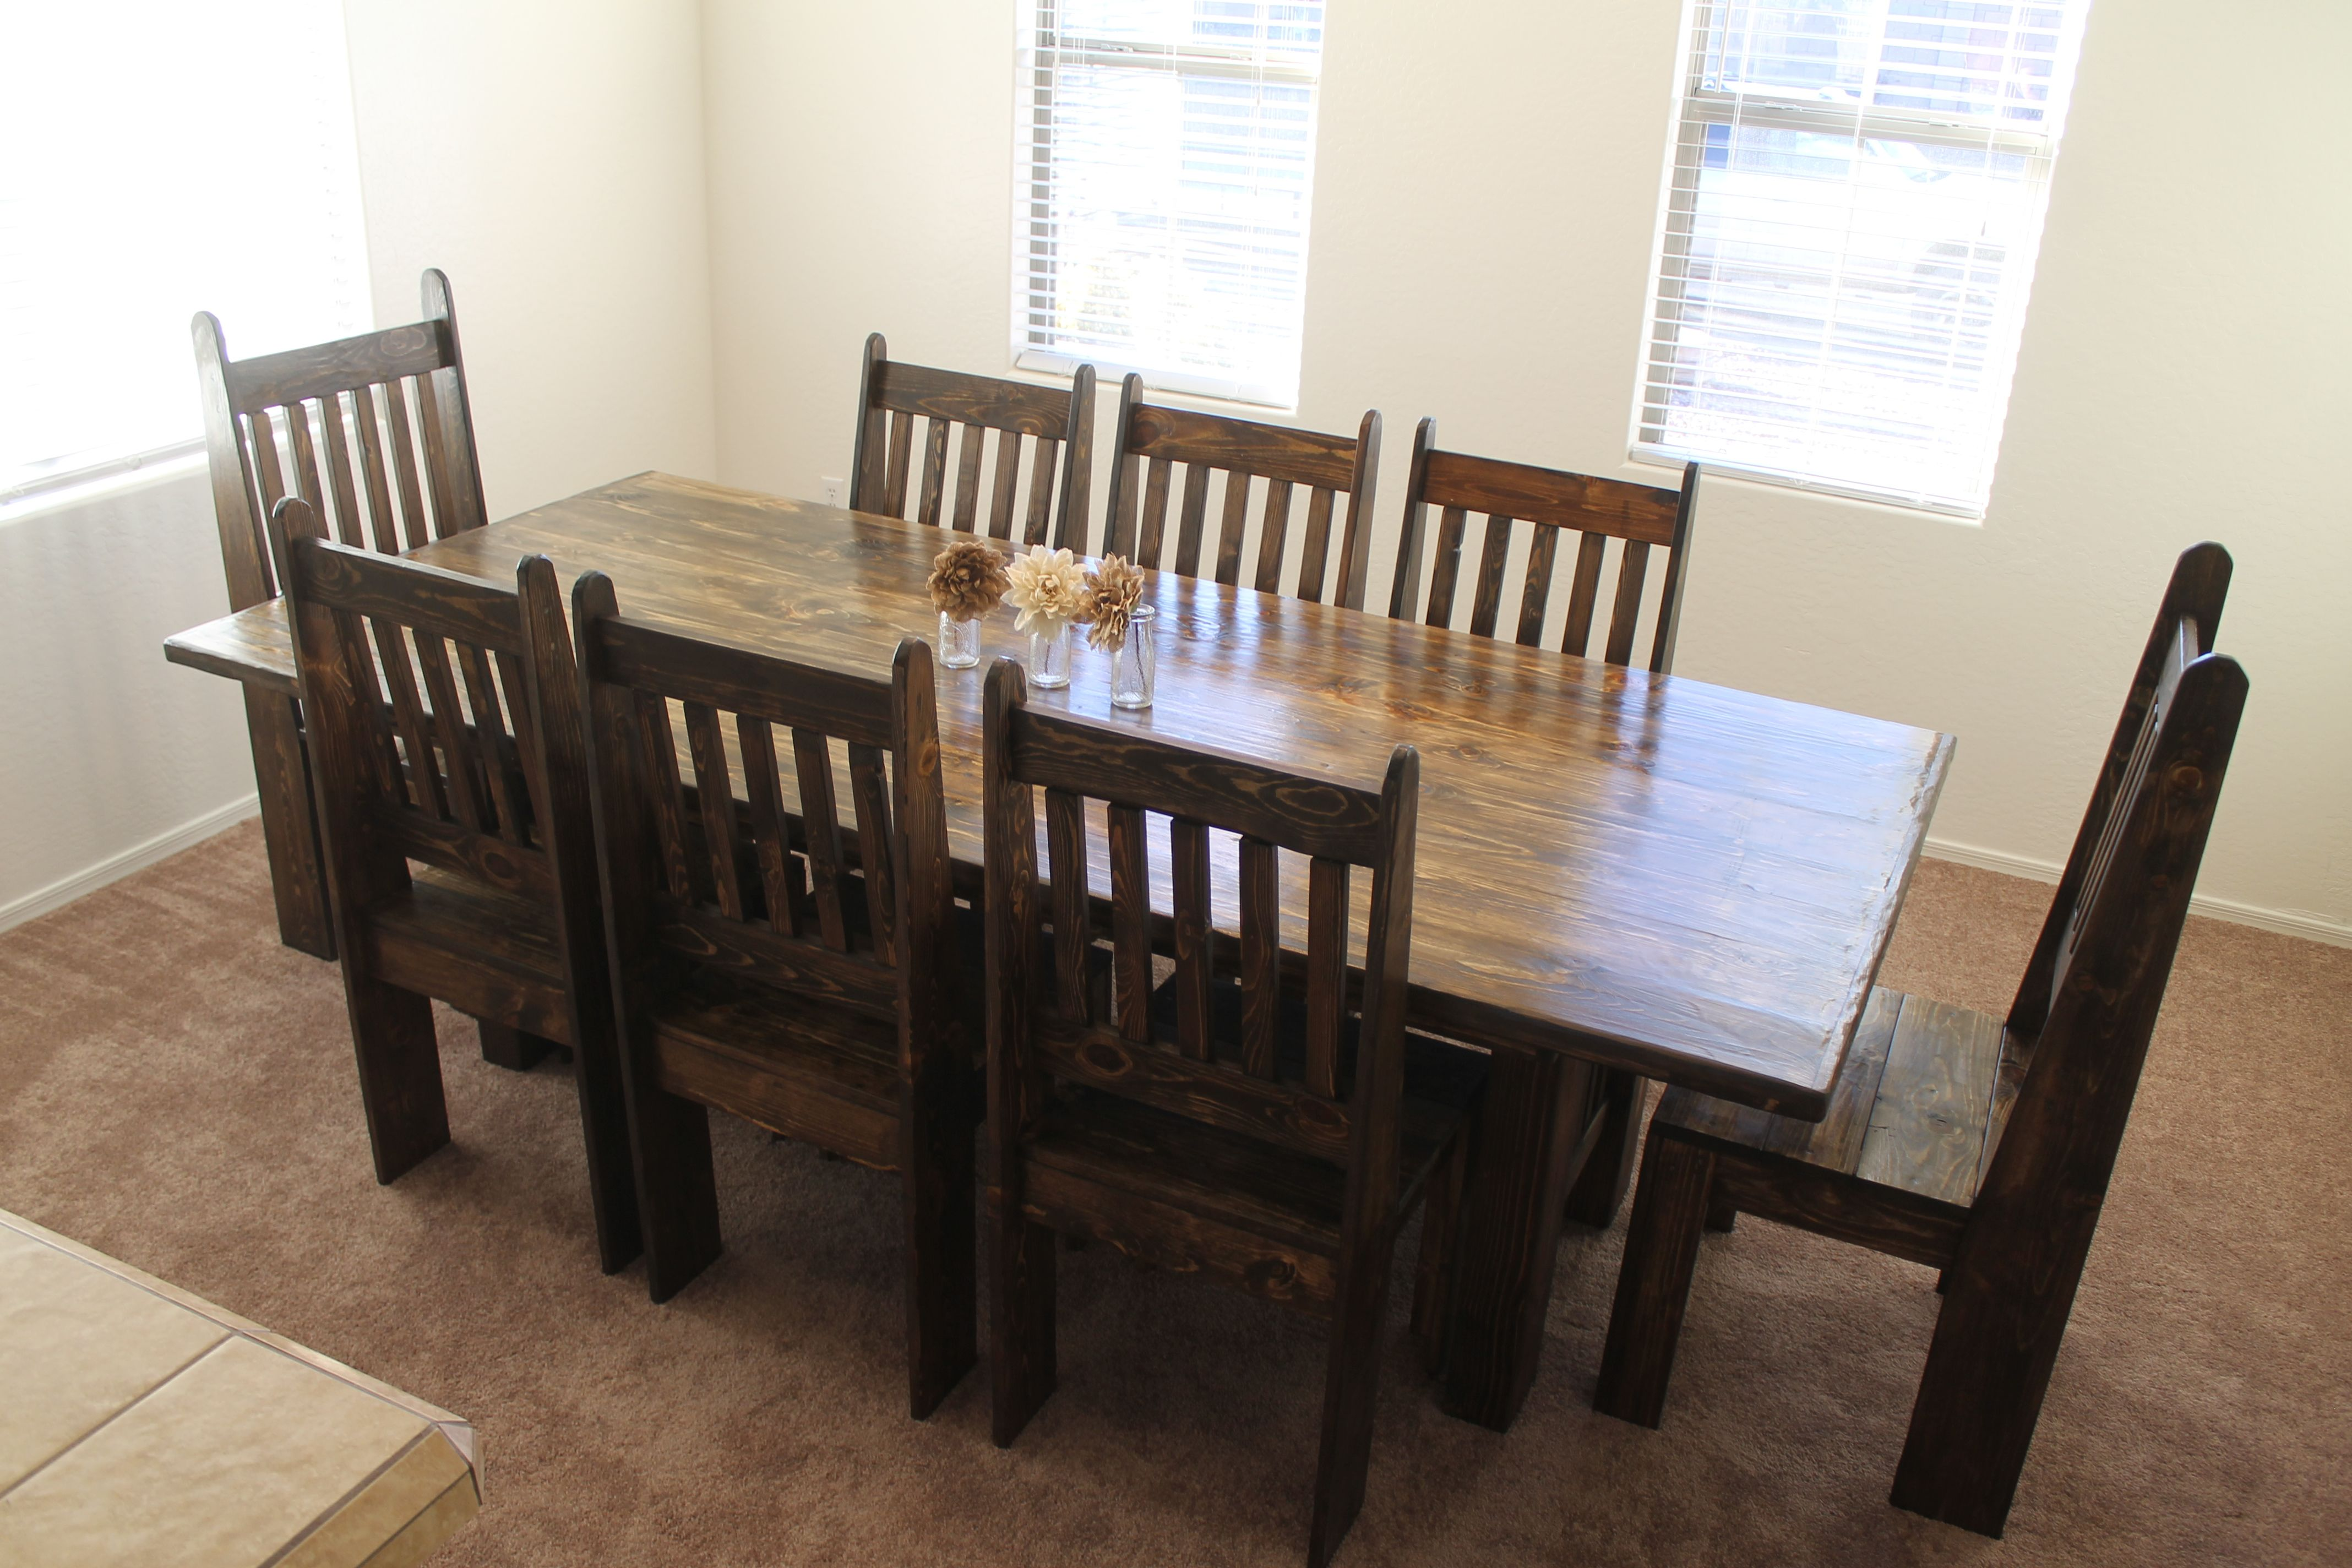 8 Foot Mission Style Table With Matching Chairs And Stained In Dark Walnut The Trunk Trader Farmhouse Style Furniture Table Makeover Matching Chairs